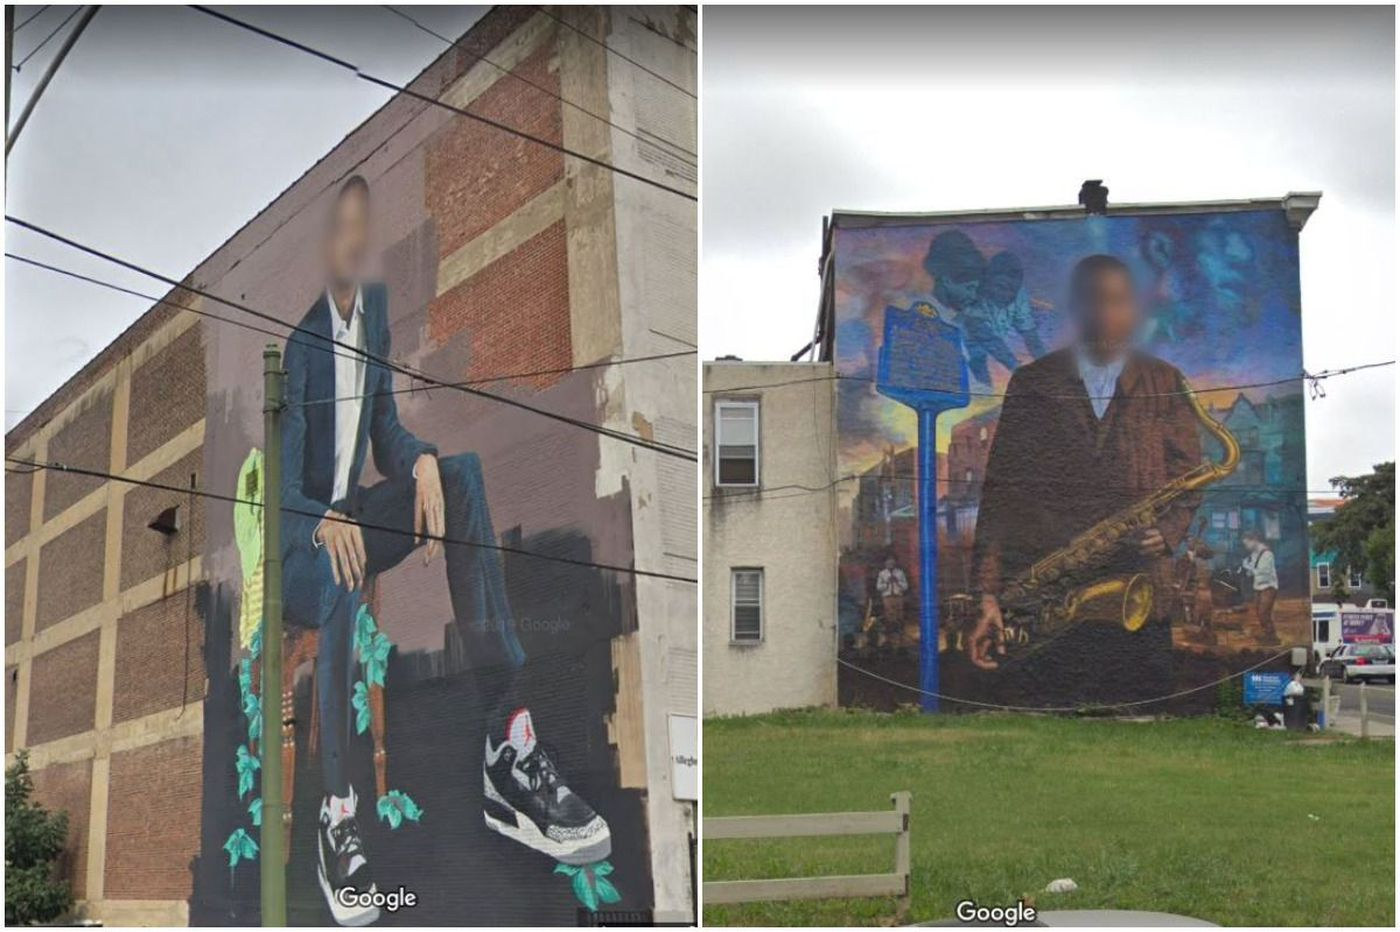 Google Street View is blurring faces in Philly's murals